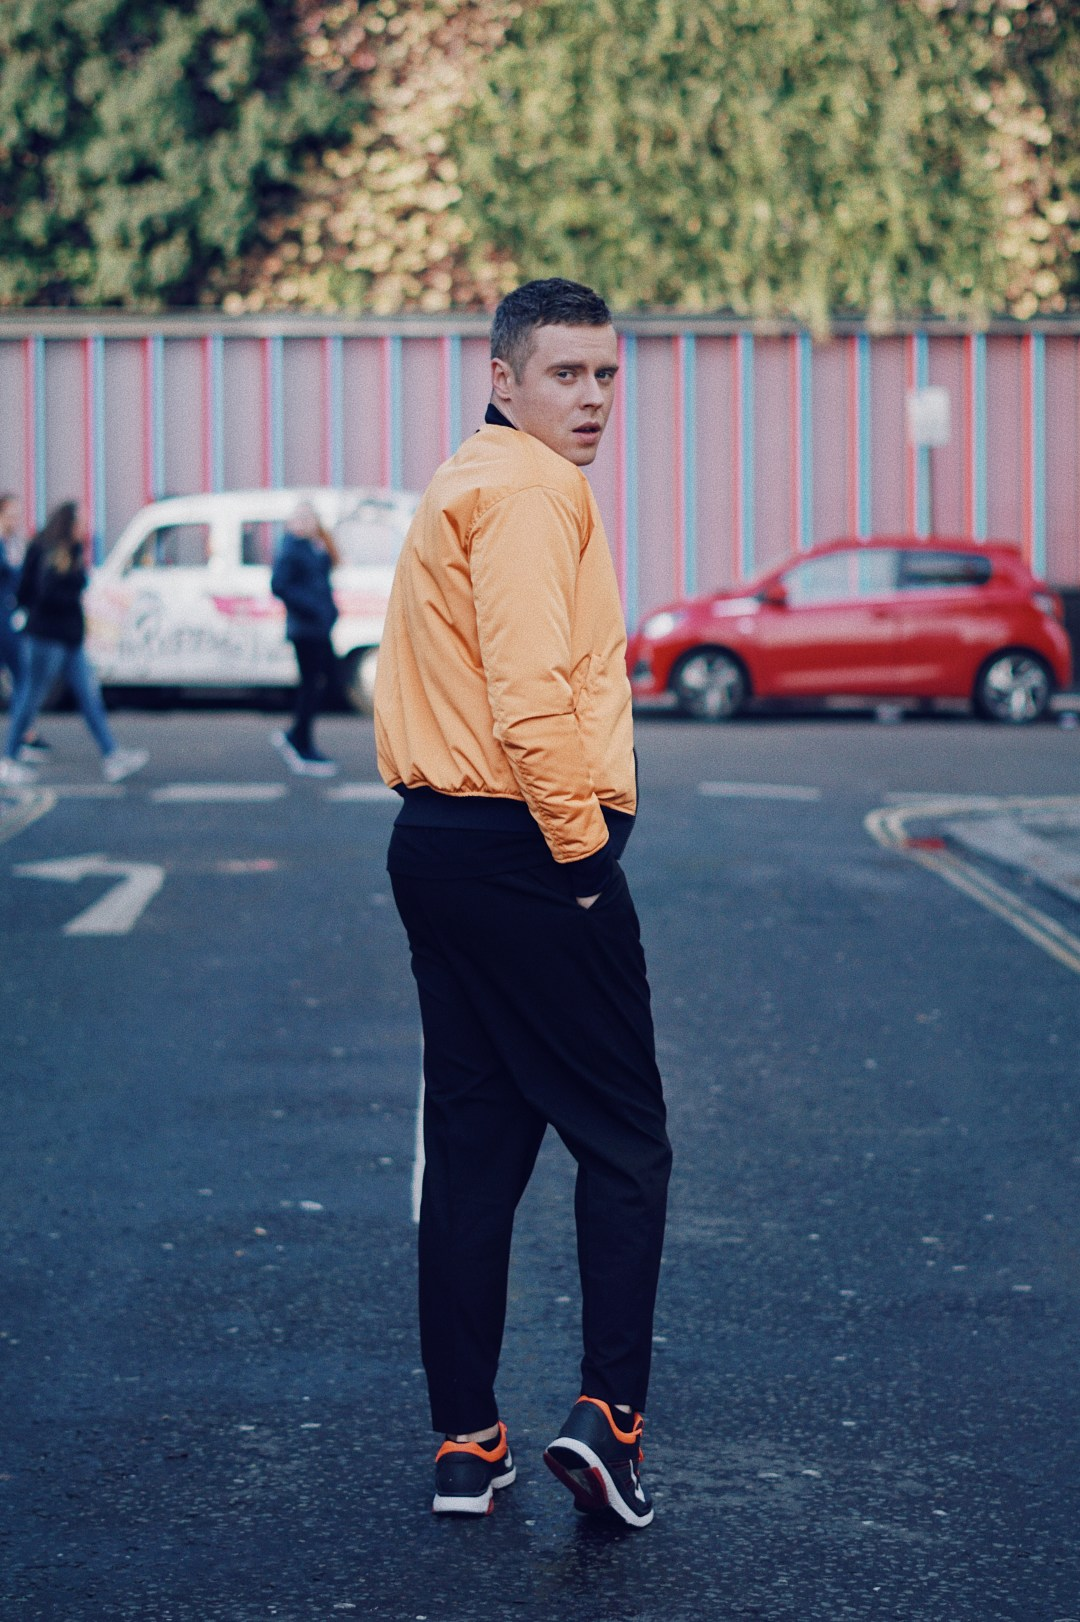 Wearing Padded Neon Bomber Jacket from Zara, Multi Helmet T-shirt from Billionaire Boys Club, Drop Crotch Trousers from ASOS and Trainers from Nike. Shot in Camden Town, London.